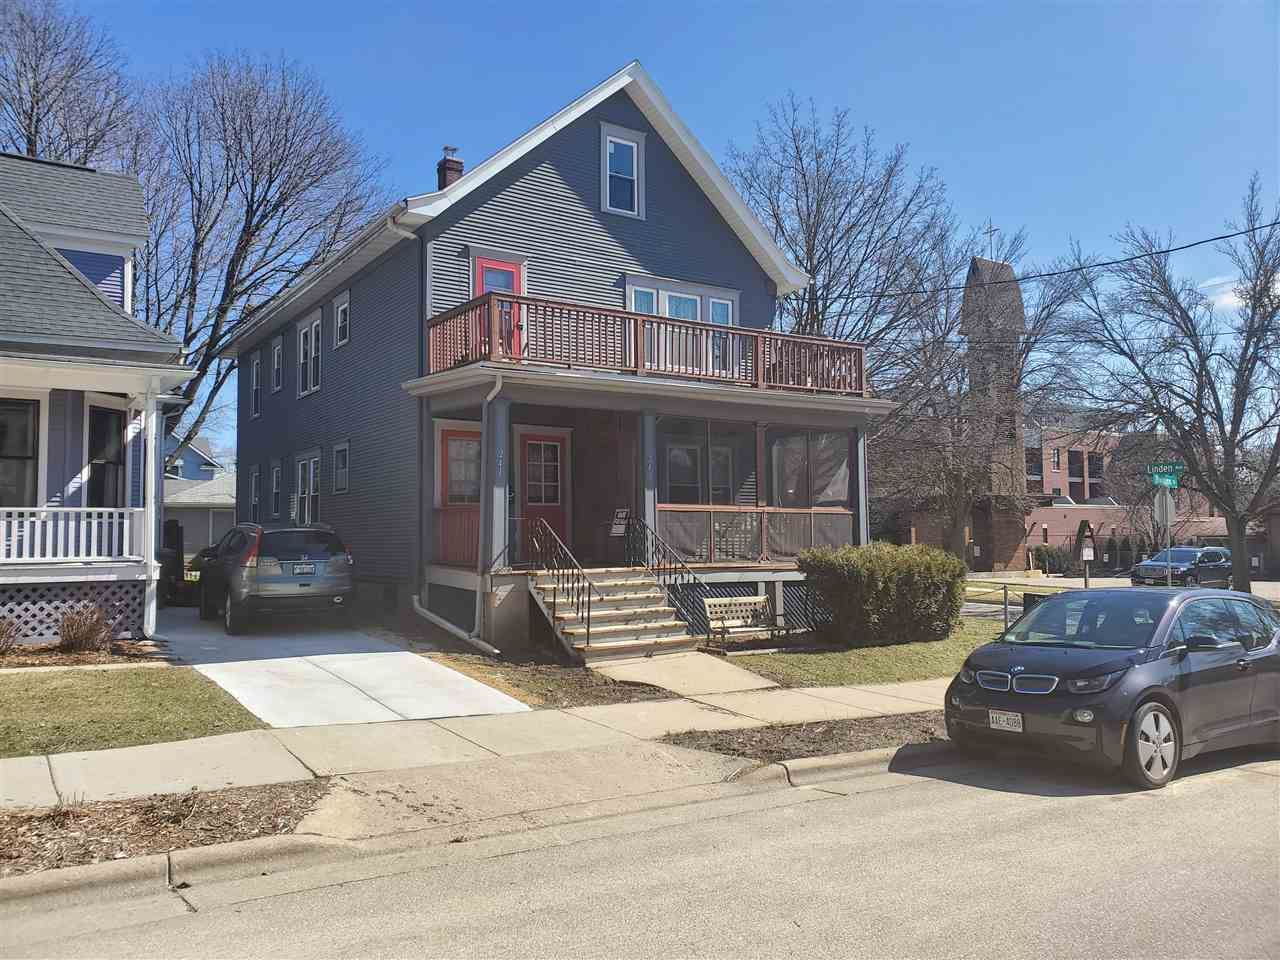 241-243 Division St, Madison, WI 53704 - #: 1879867